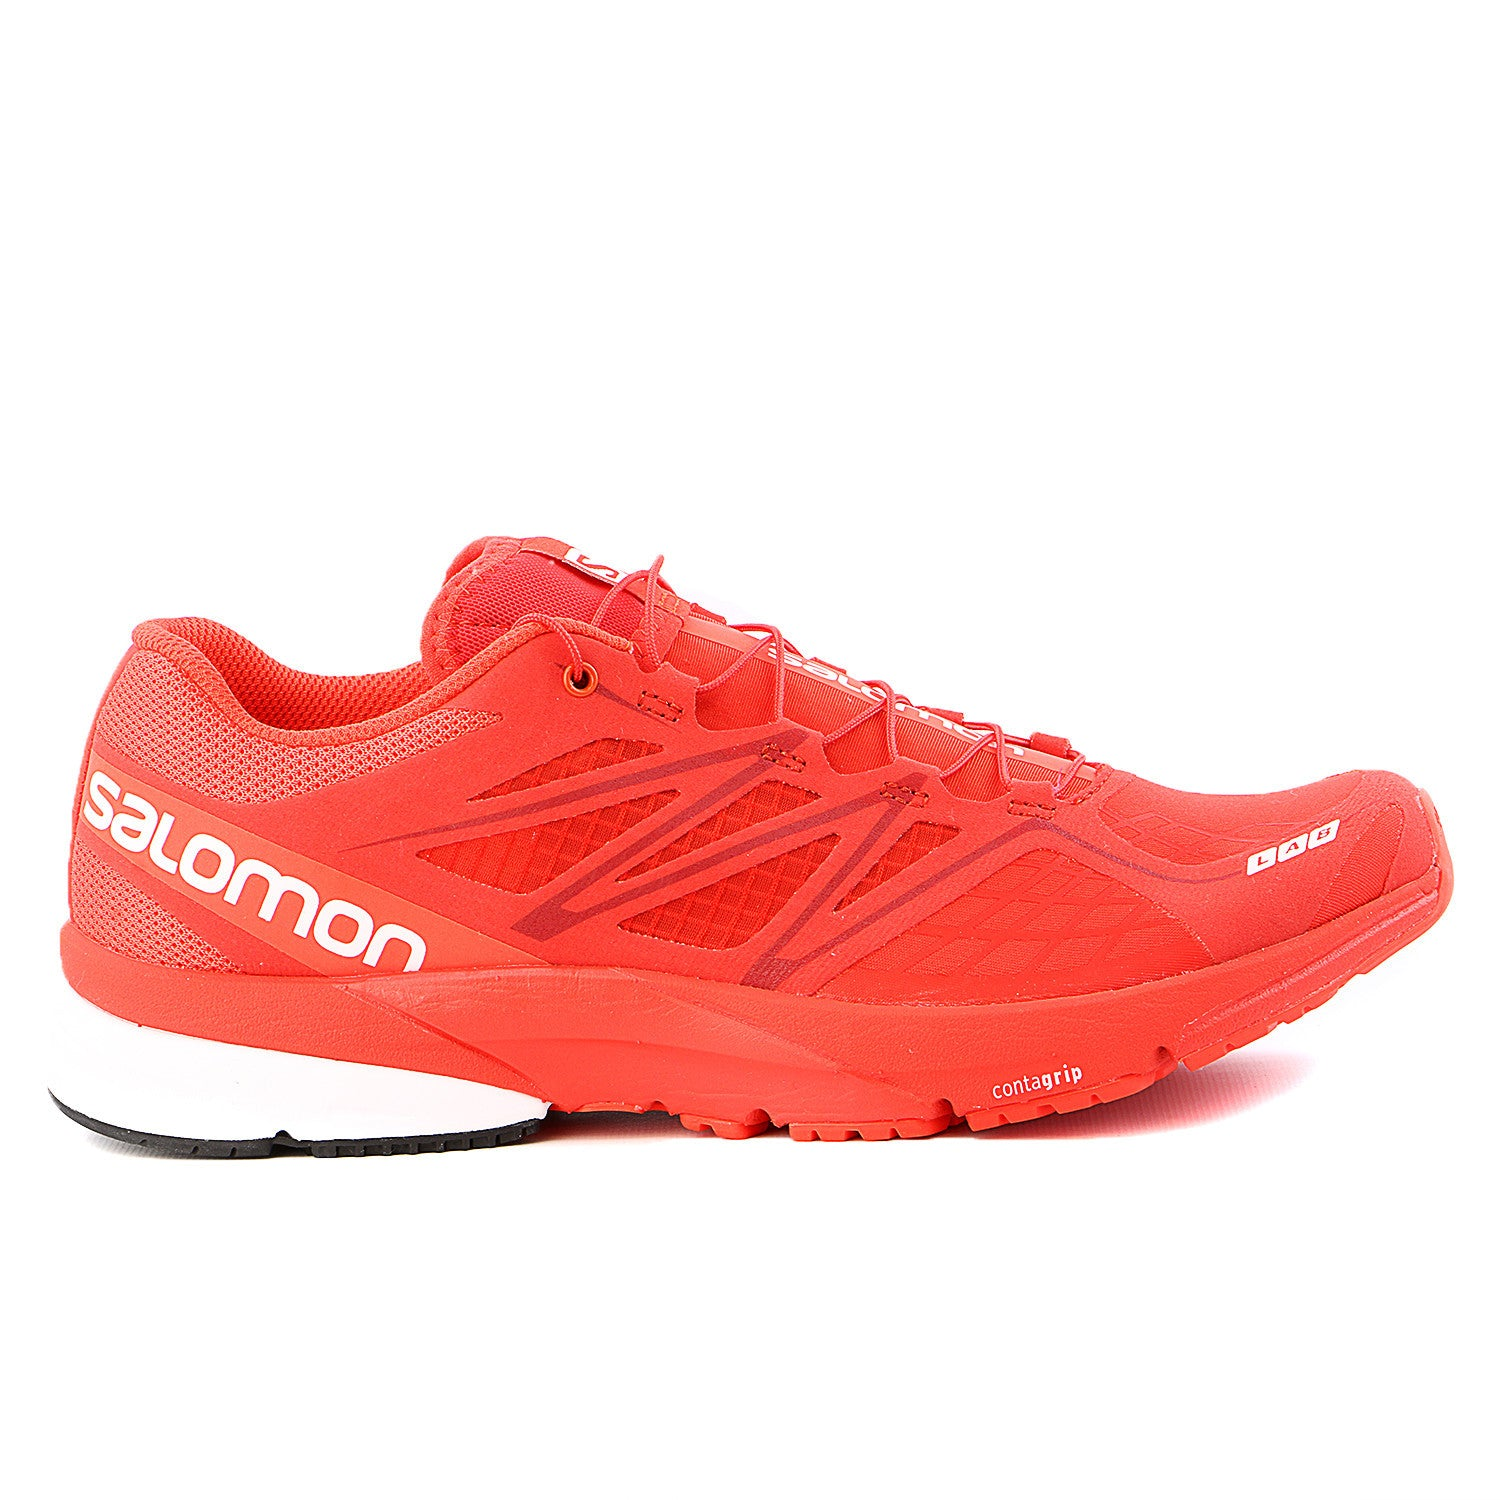 6f5aa5ce390c Salomon S-Lab X-Series Trail Running Shoe - Racing Red   Racing Red   White  - Mens